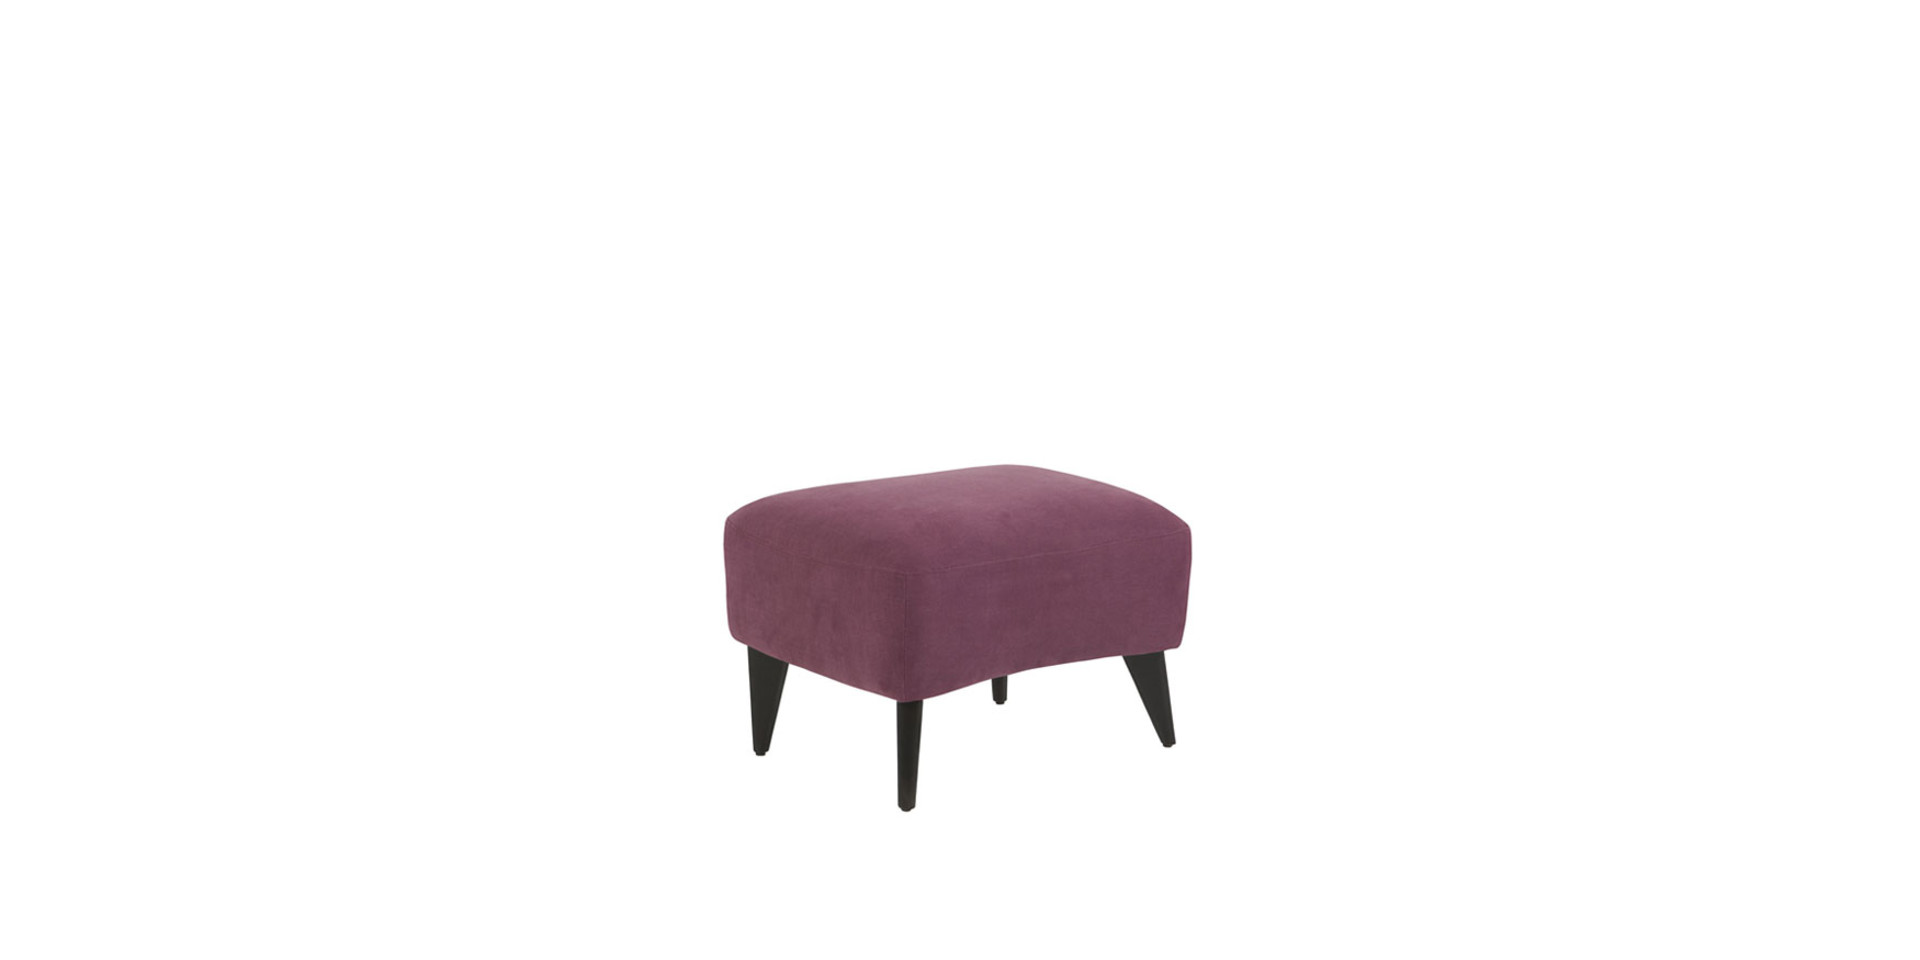 sits-kato-pouf-footstool_caleido1524_aubergine_3